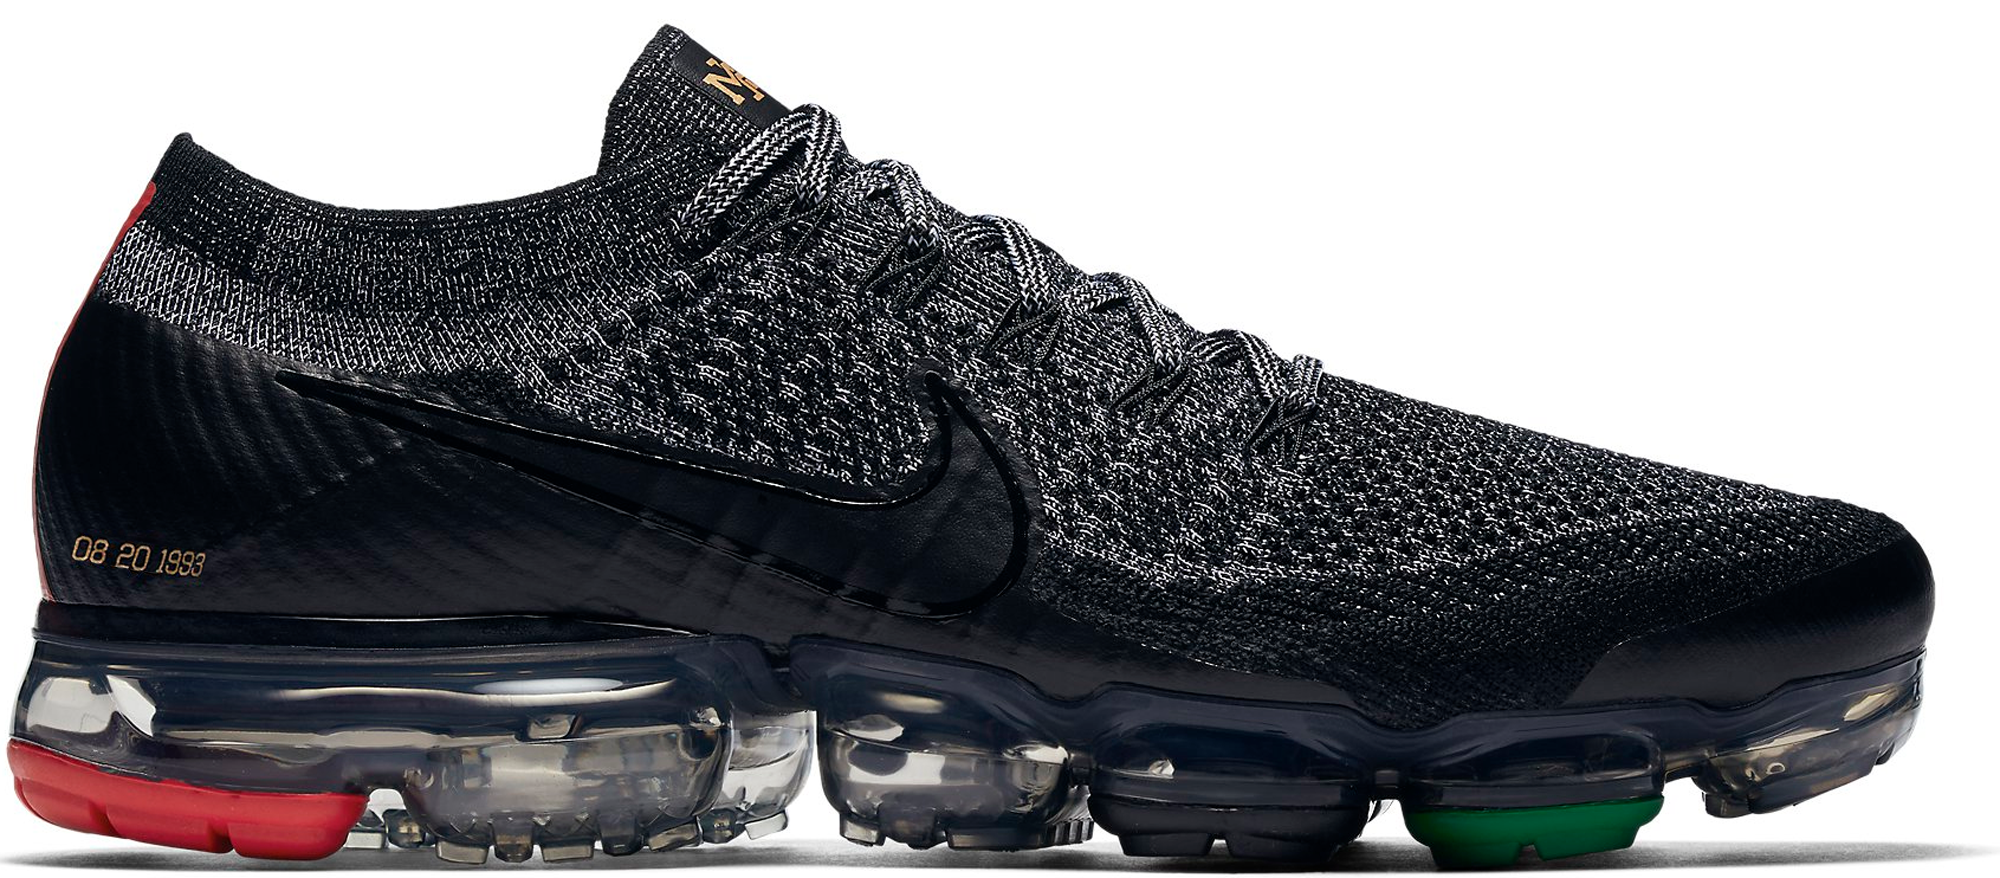 Nike Air VaporMax Flyknit BHM Black History Month 2018